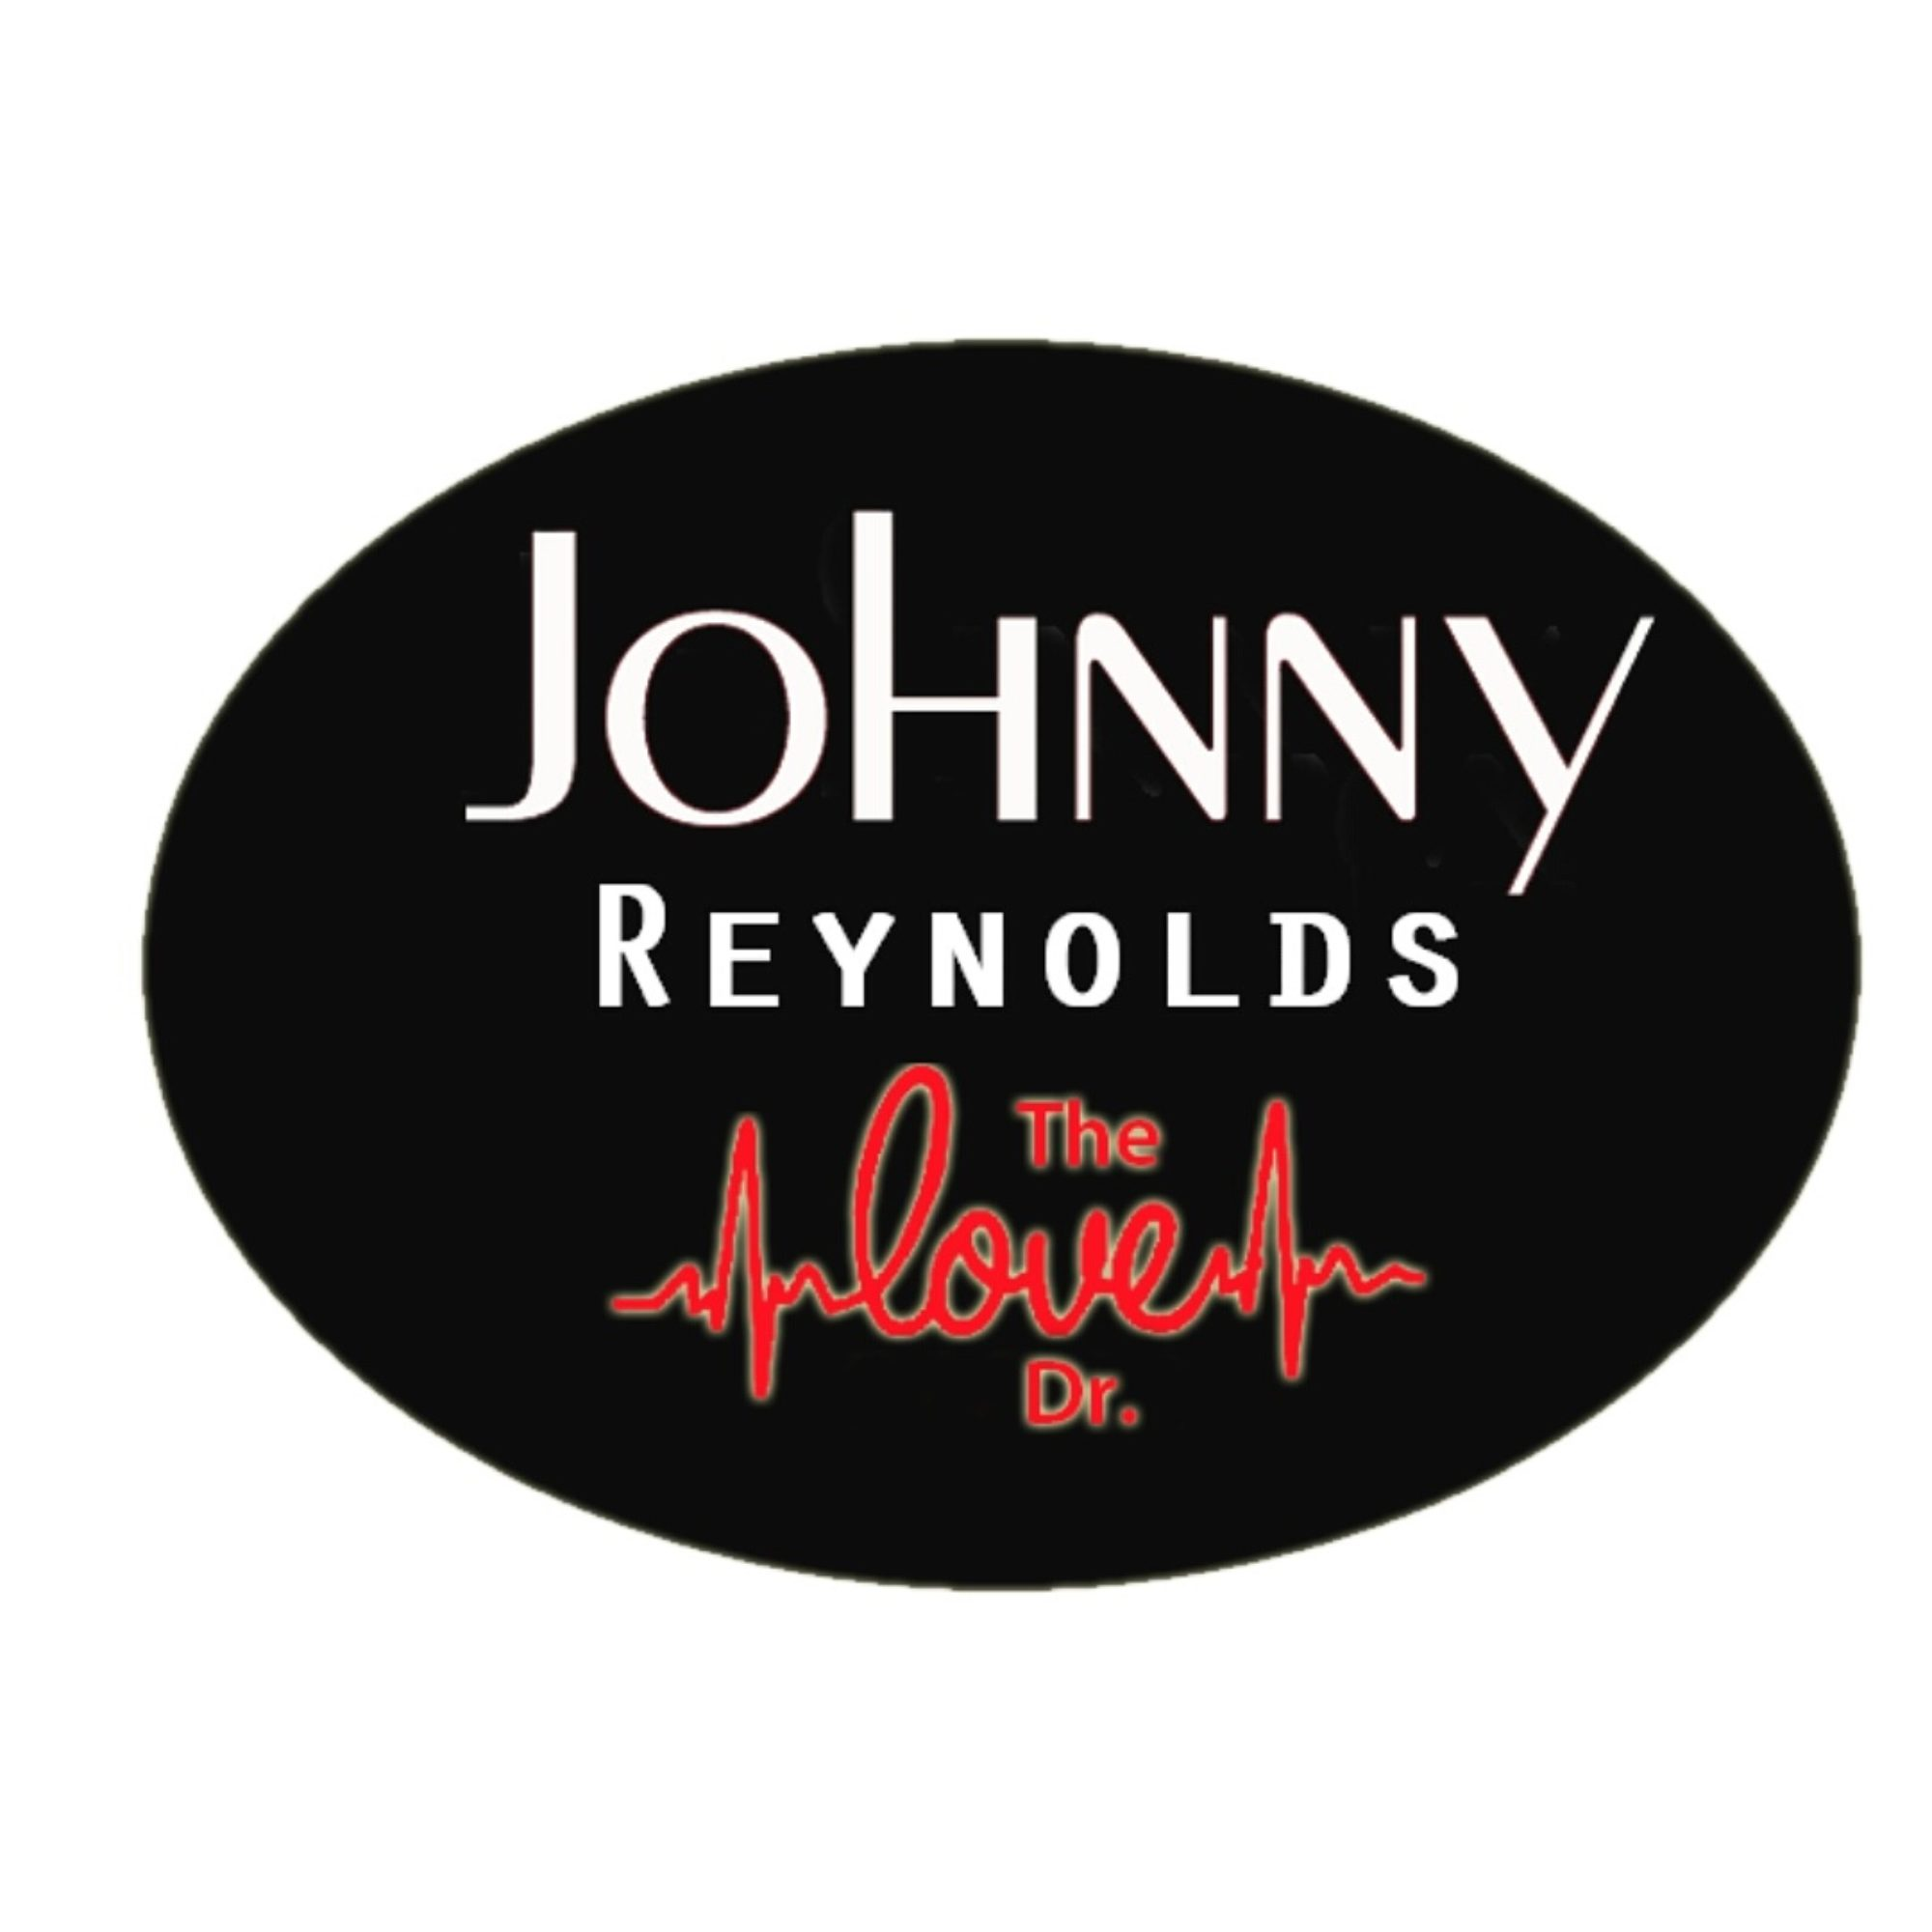 Johnny Reynolds Speaker, Author, Educator & Relationship Coach